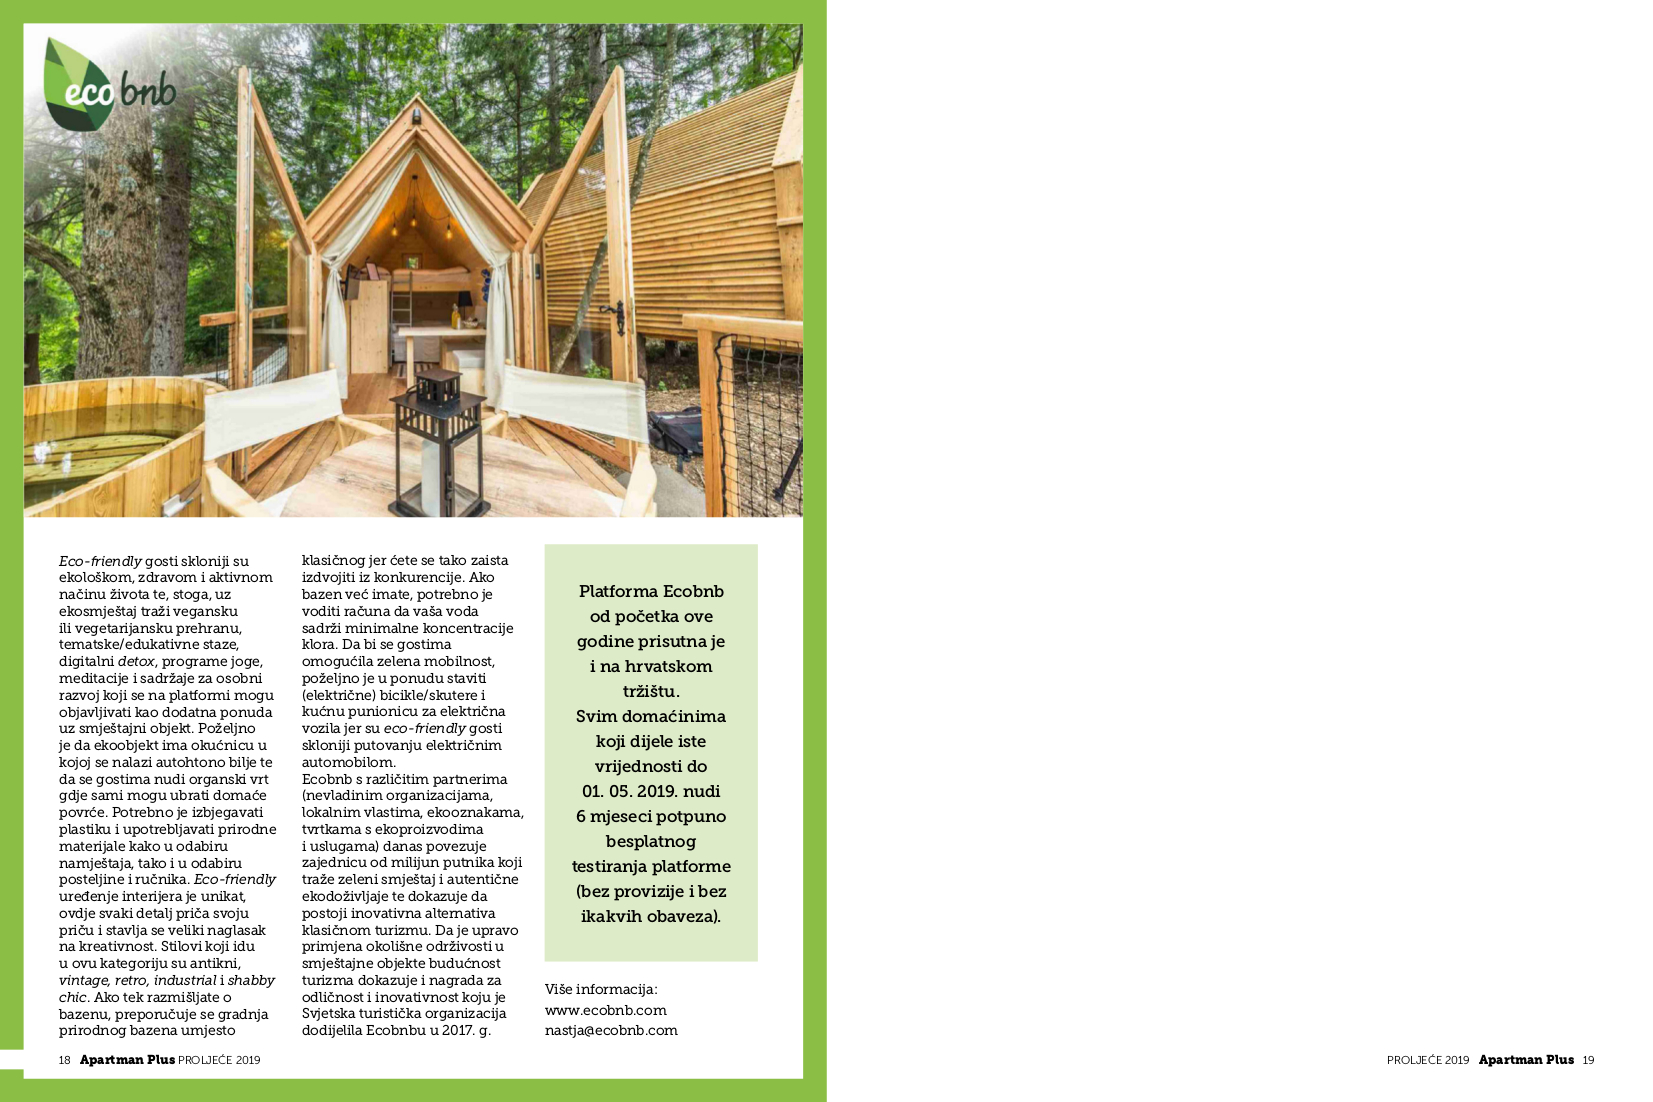 The article about Ecobnb, published on the Croatian magazine Apartman Plus